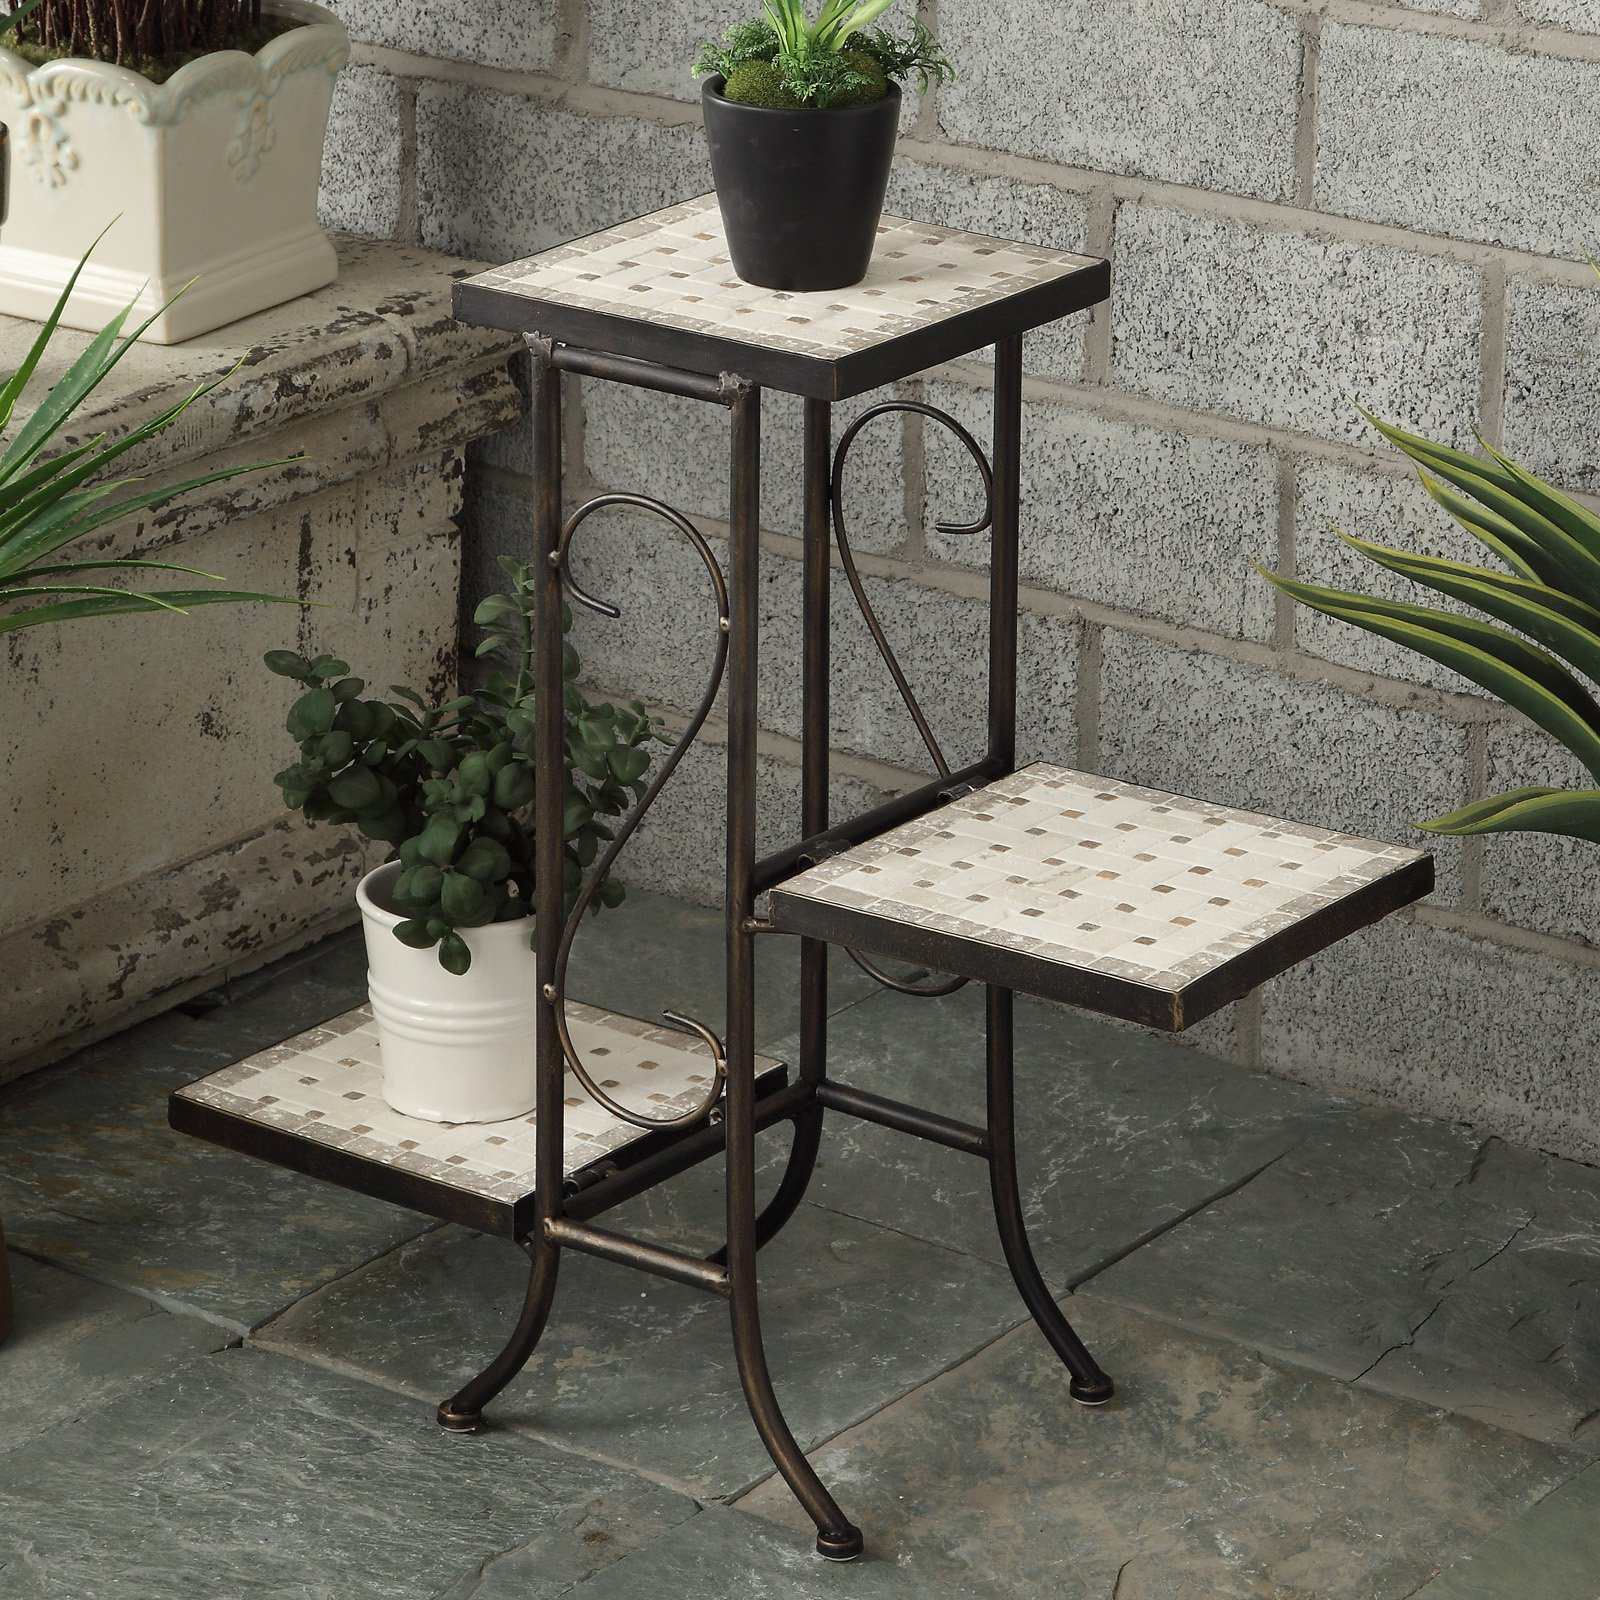 4D Concepts 3 Tier Plant Stand with Travertine Top by 4D Concepts